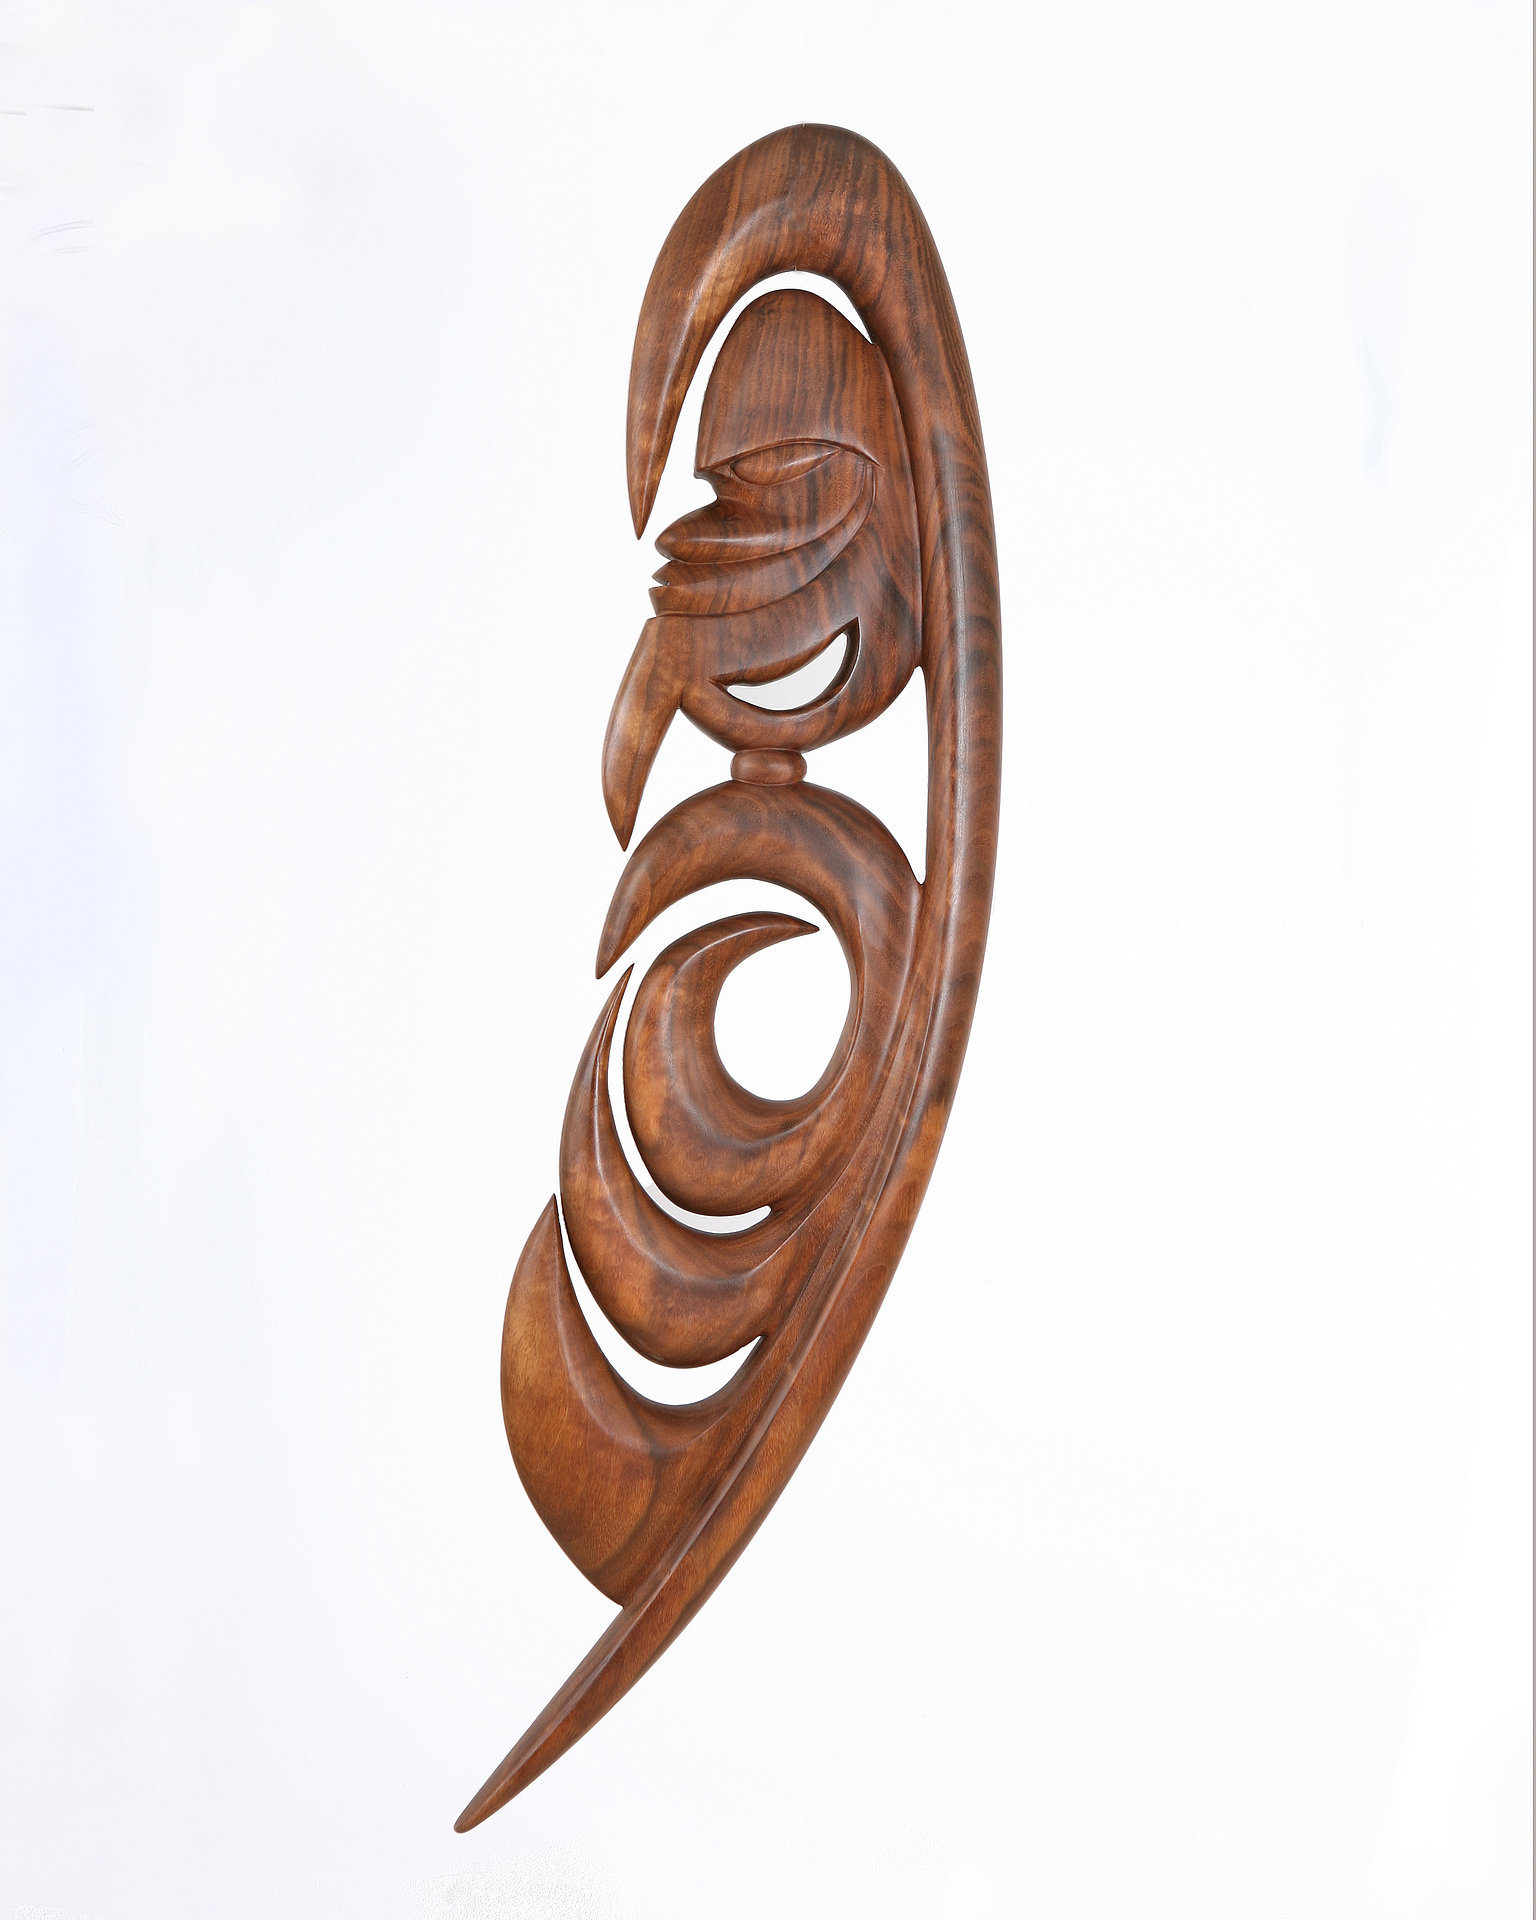 Yipwon SpiritFigure , Black Walnut